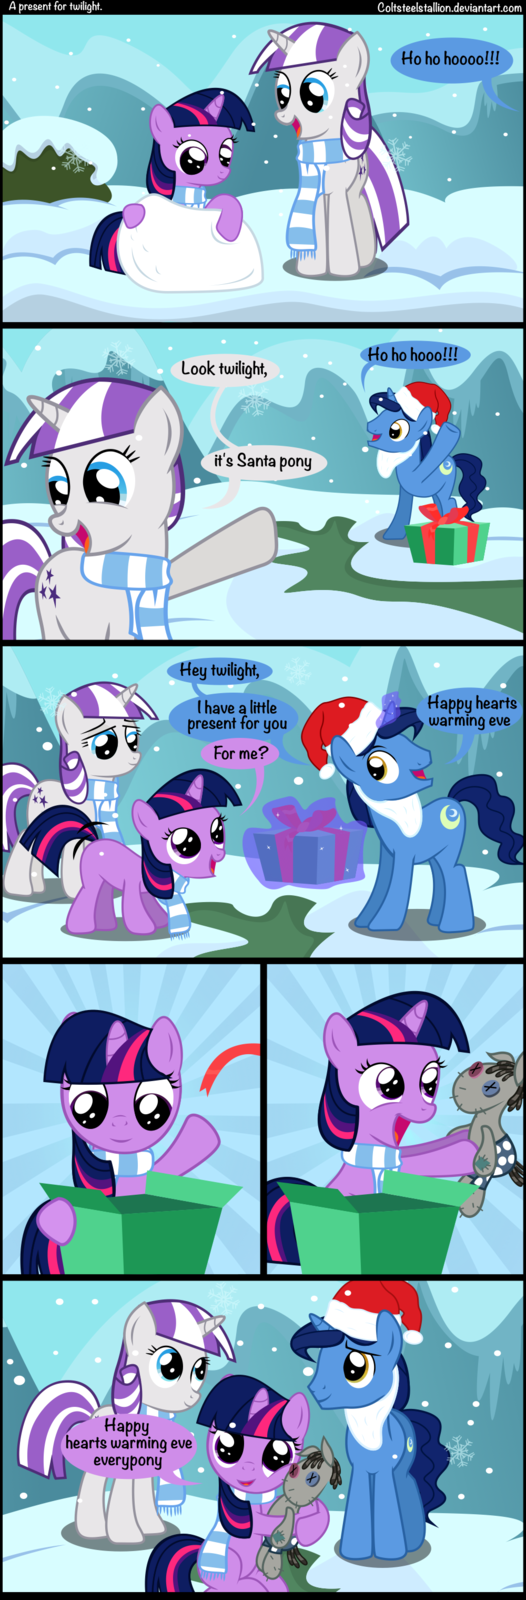 A present for Twilight